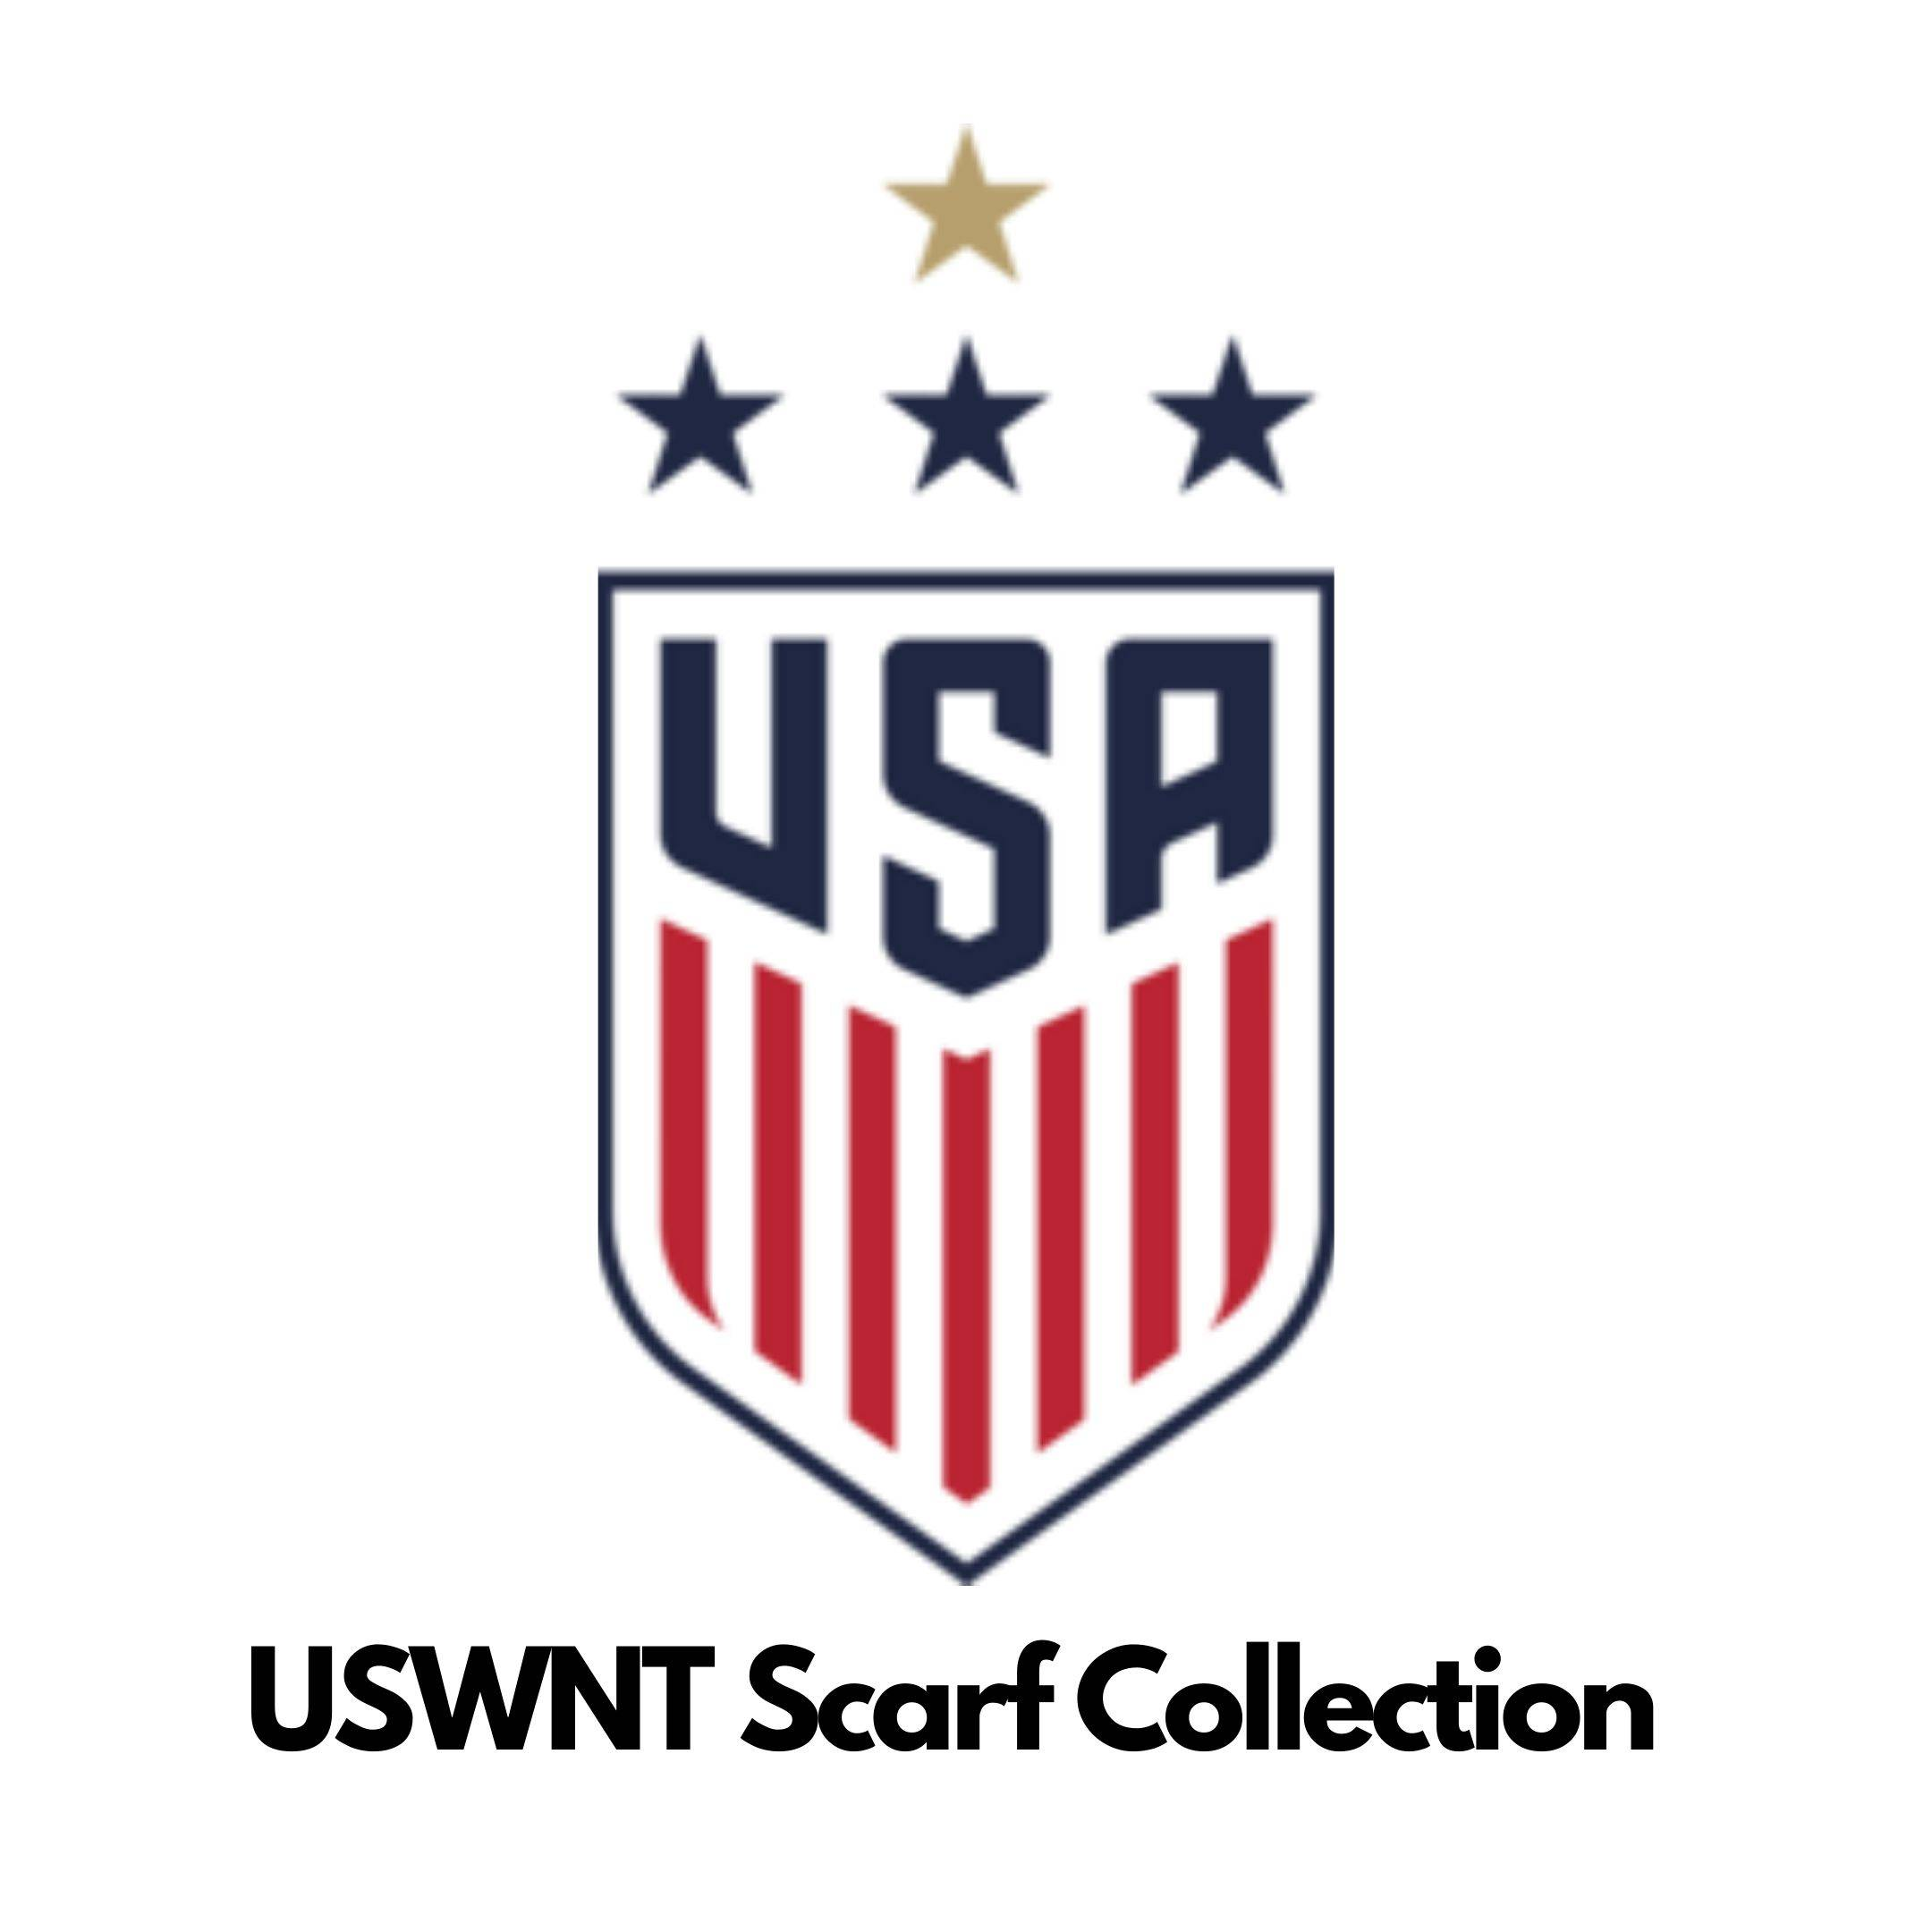 USWNT scarf collection